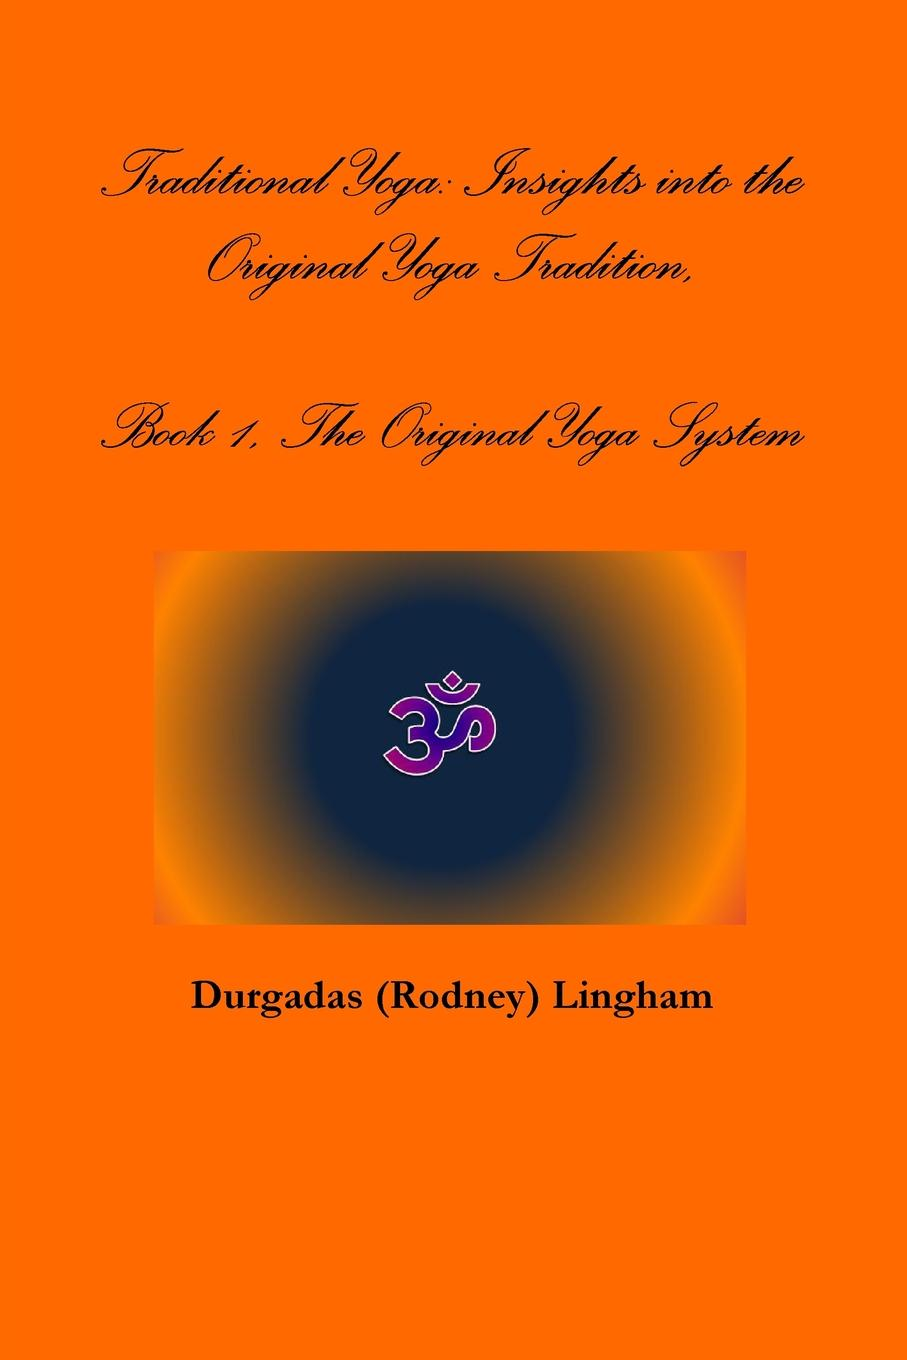 Durgadas (Rodney) Lingham Traditional Yoga. Insights into the Original Yoga Tradition, Book 1, The Original Yoga System the tree of yoga